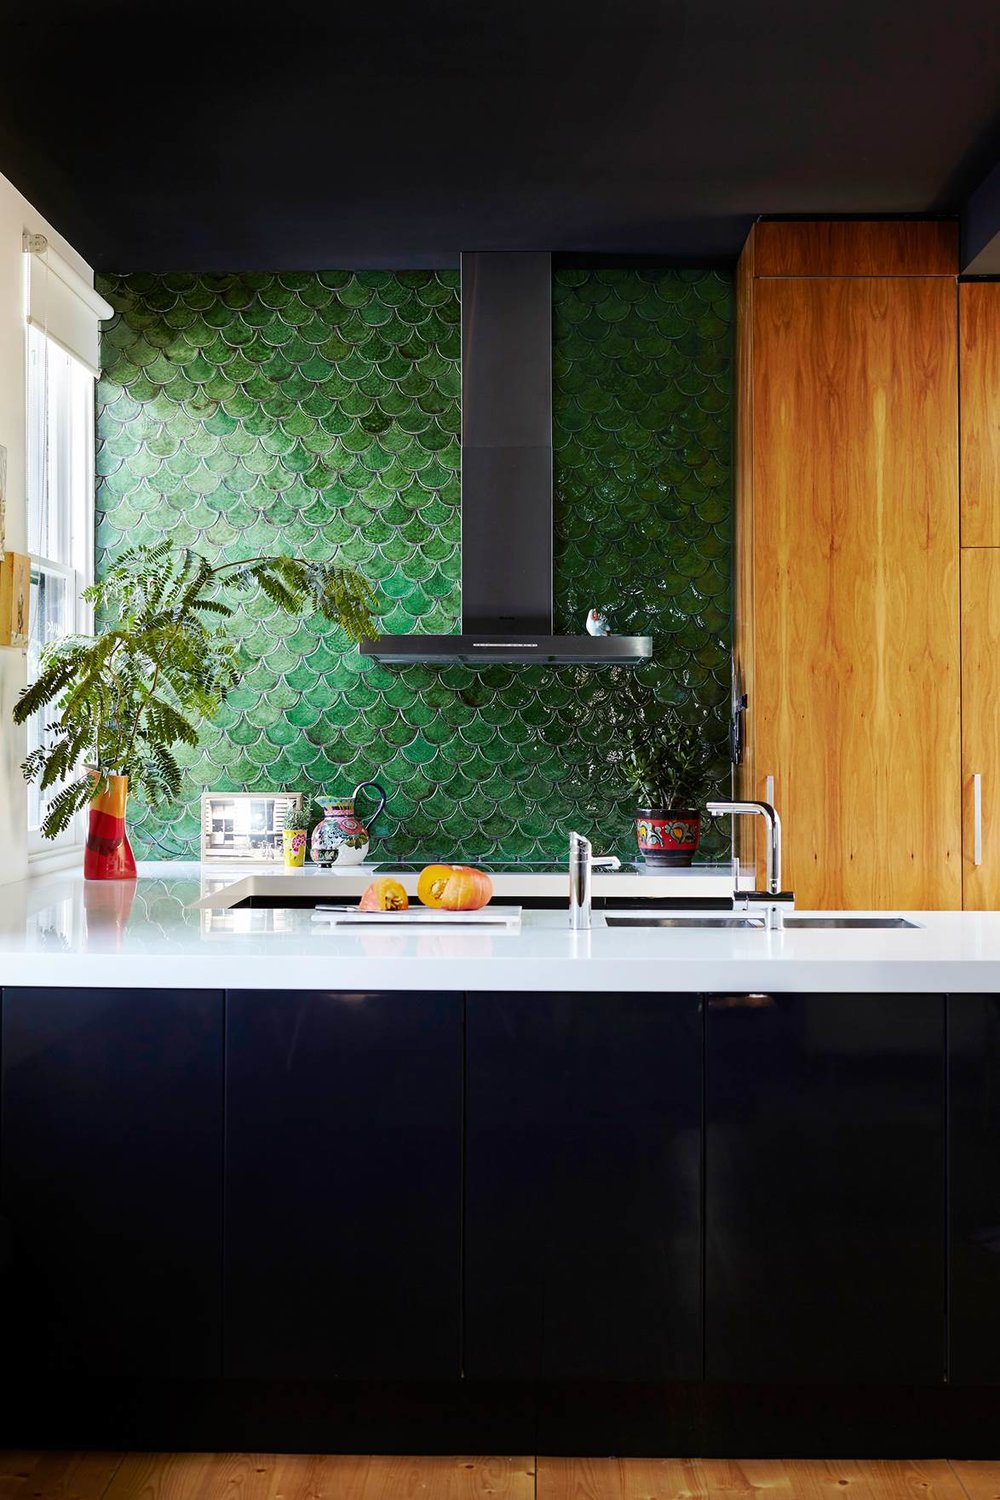 These fish scale tiles are almost reptilian. Very cool. Image source:  Australian House & Garden